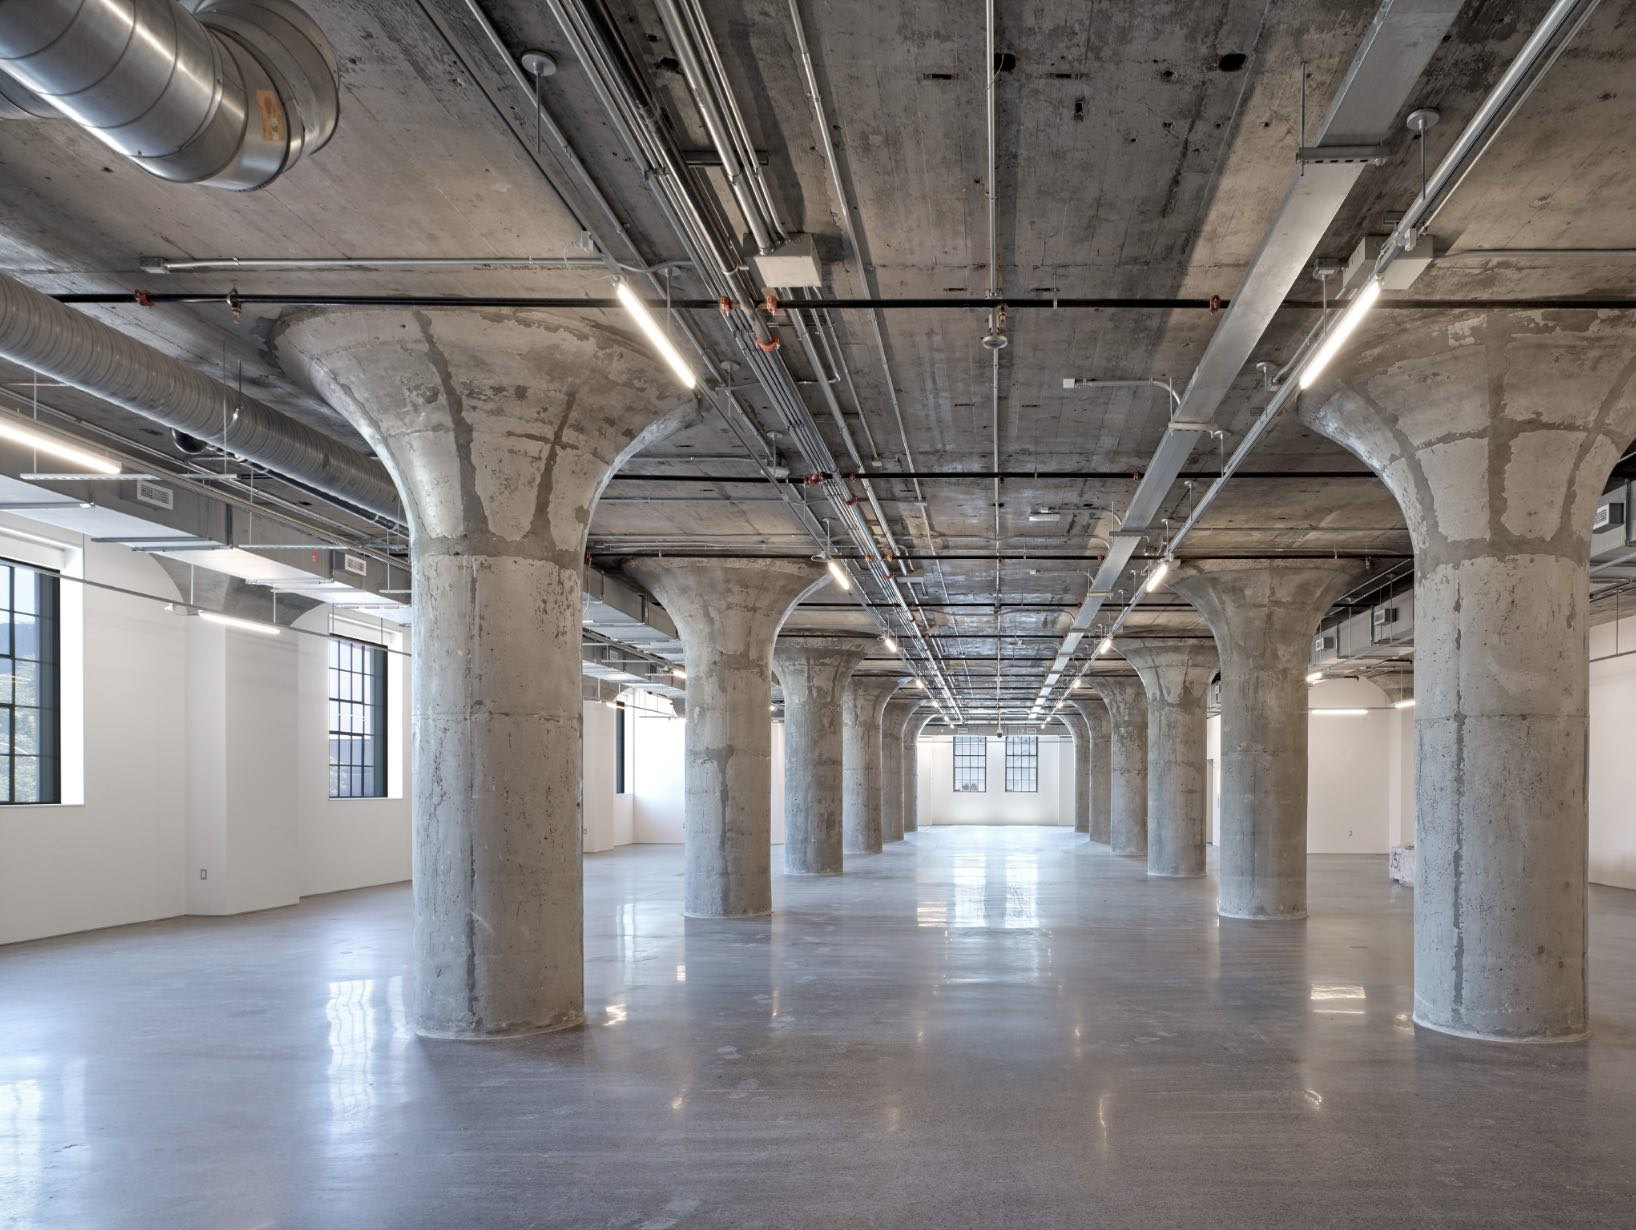 The MOCA interior, awaiting the first exhibitions. Photo by Ben Rahn / A-Frame.